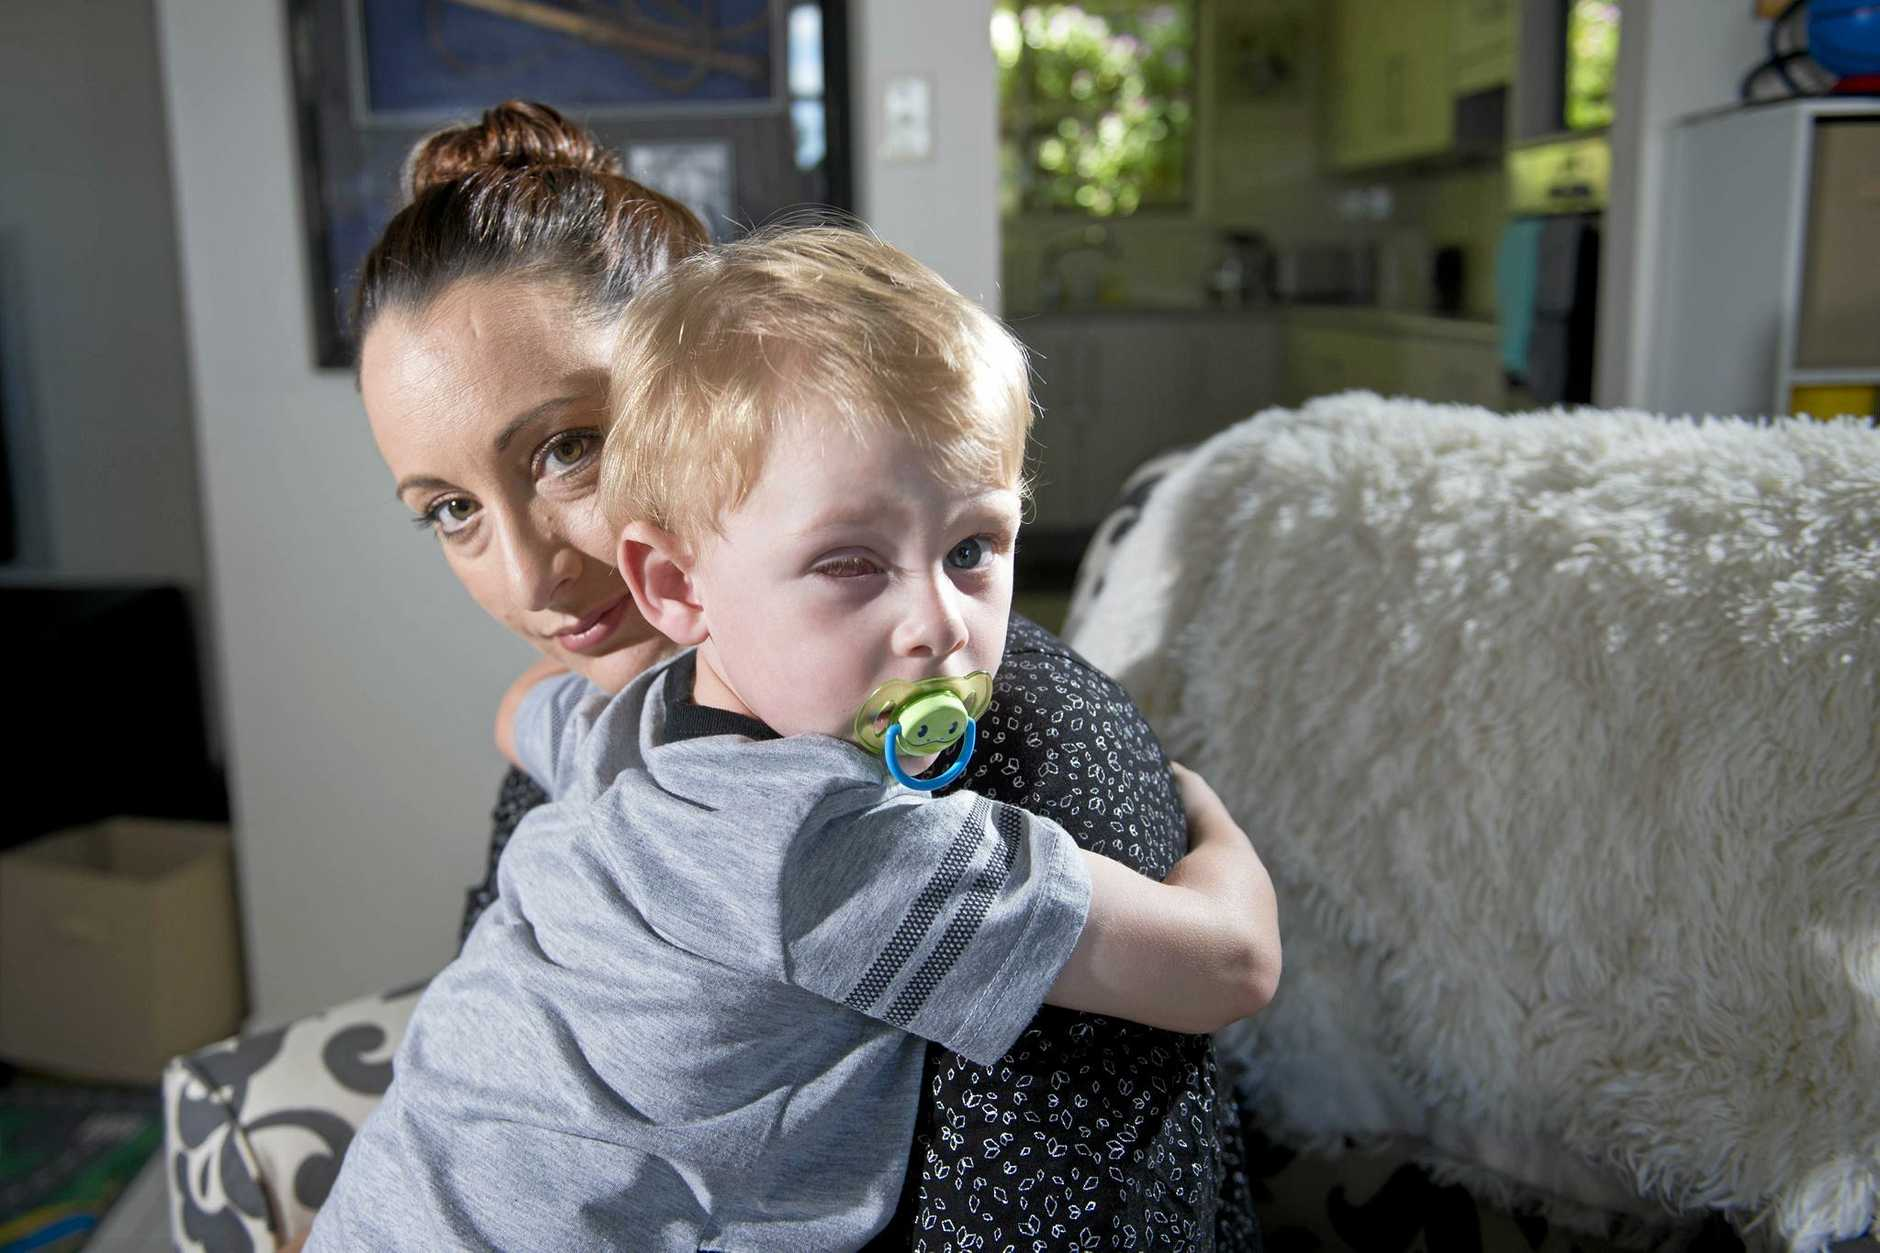 Lara Stokes' son Jack, 2, has had his right eye removed because he was diagnosed with retinoblastoma.